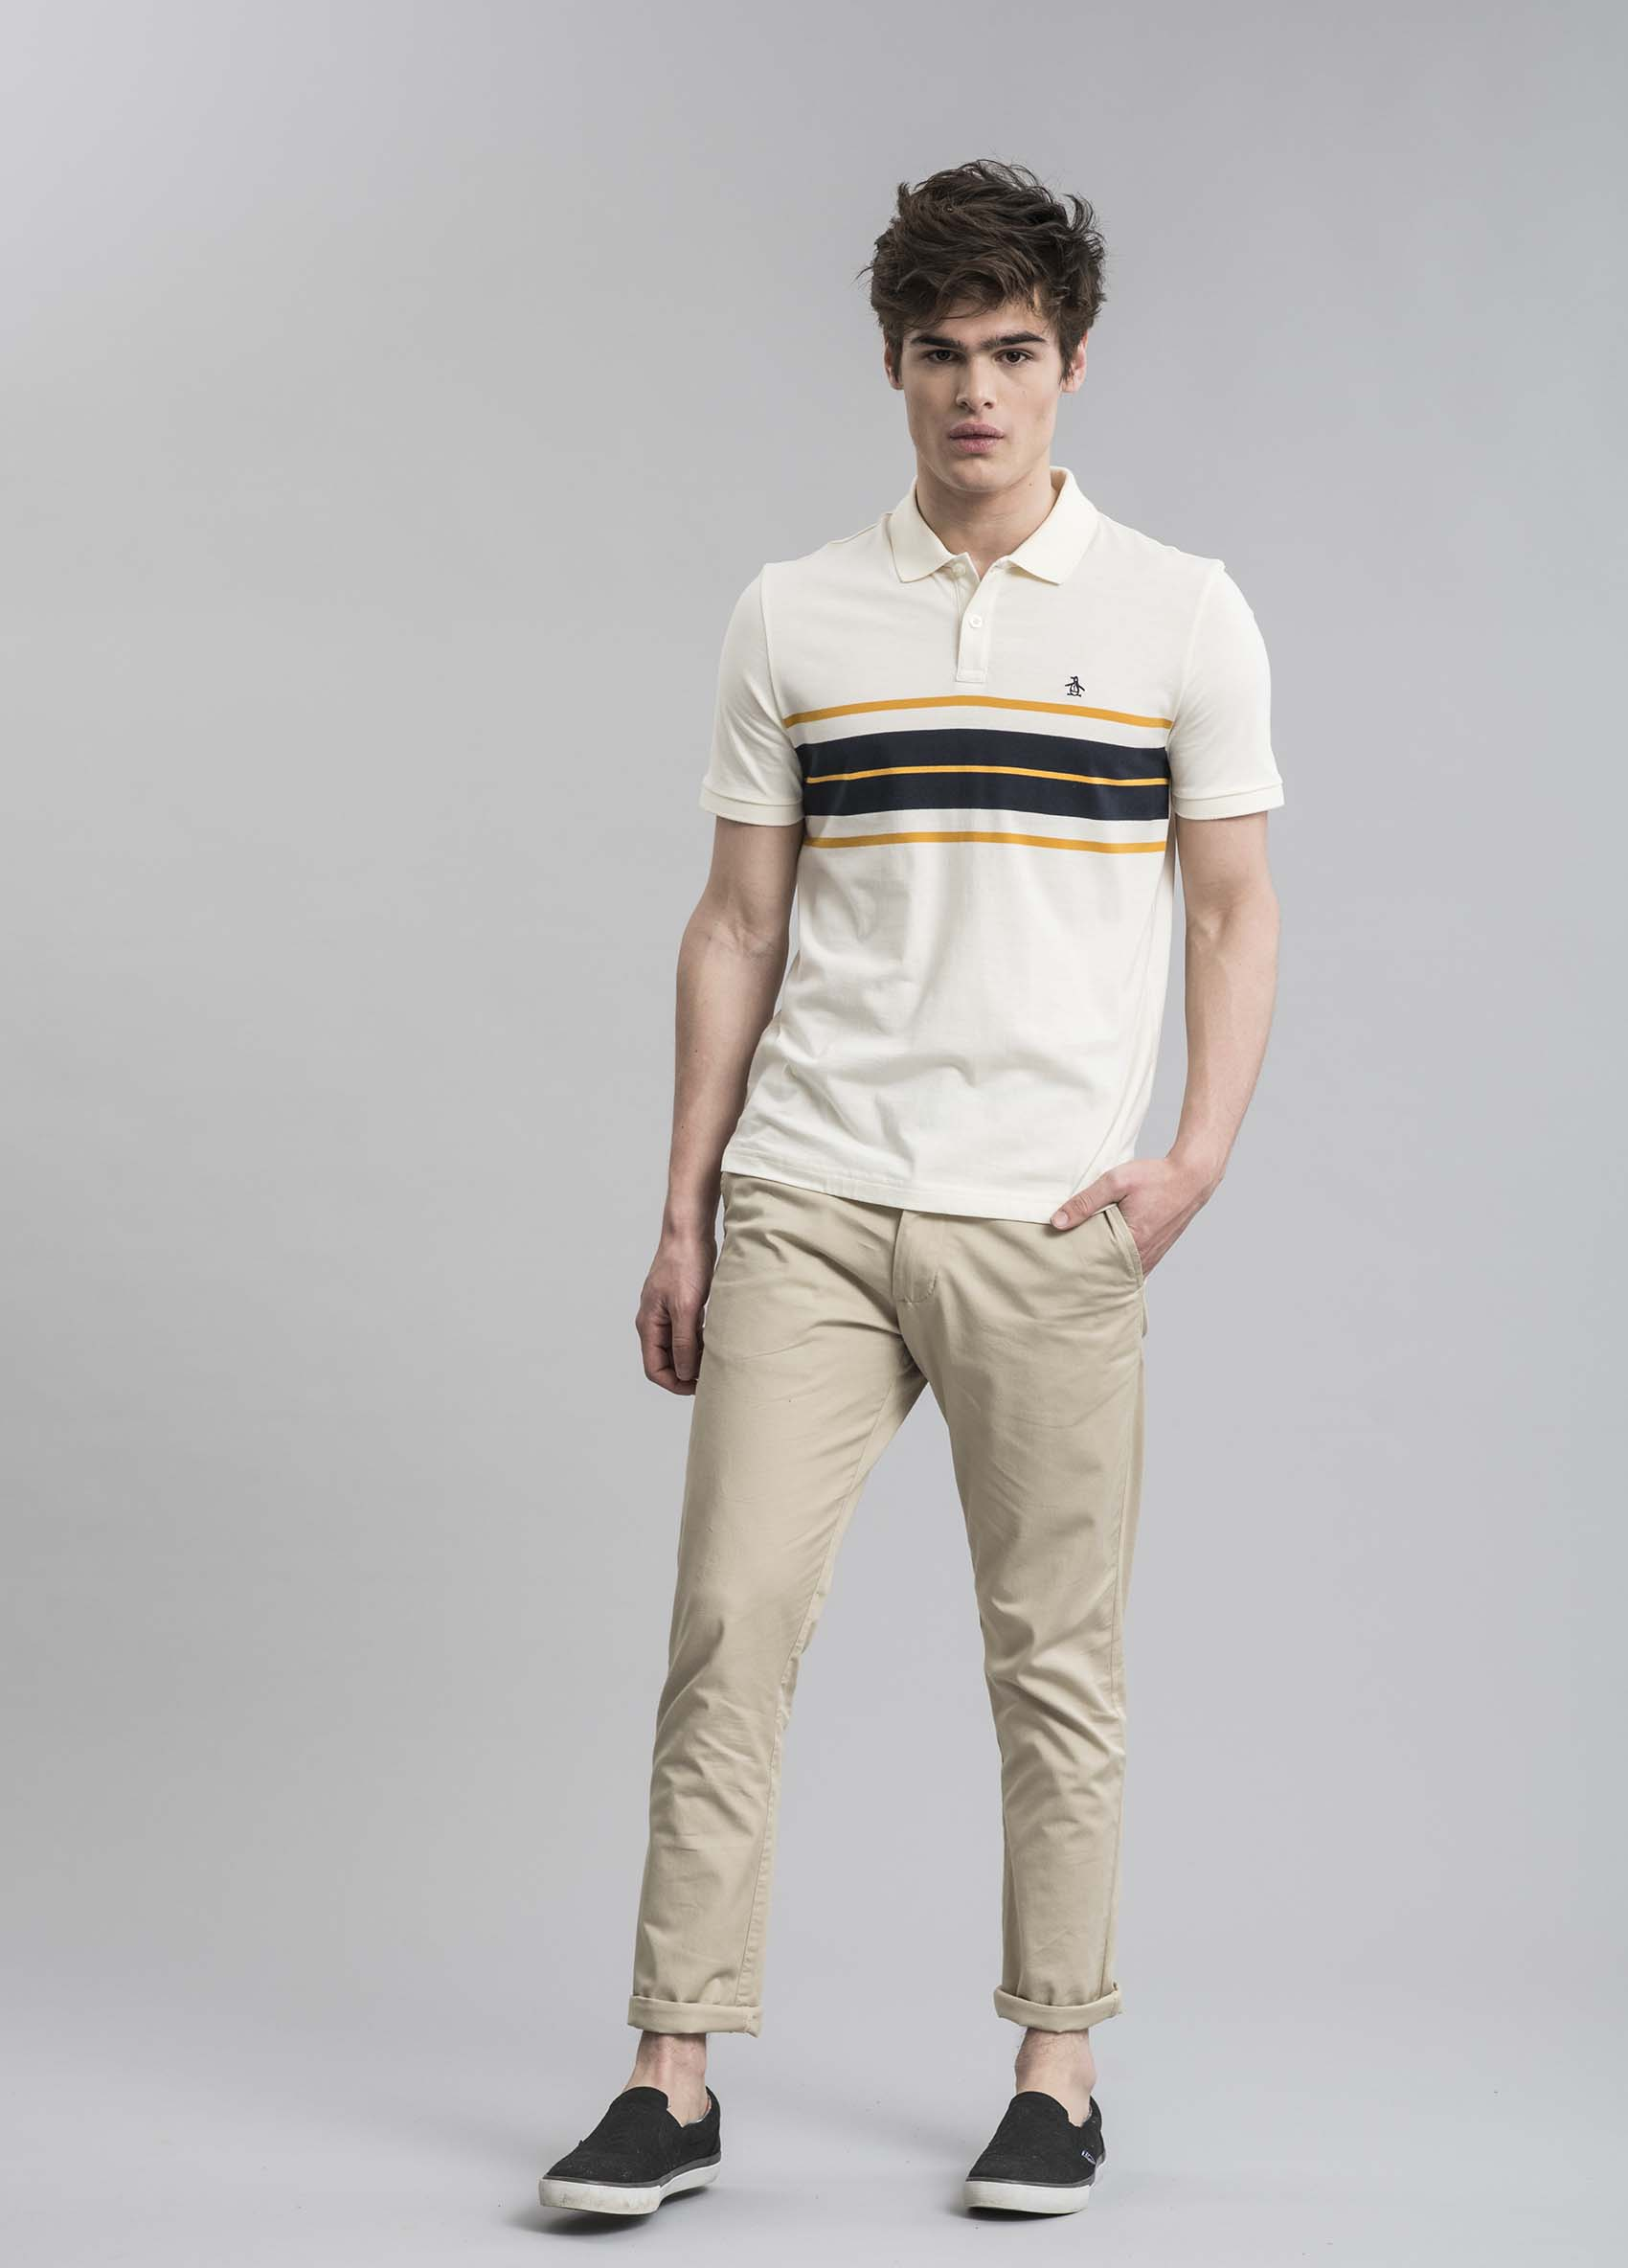 penguin_s/s-paneaux-stripe-polo_35-25-2019__picture-12110